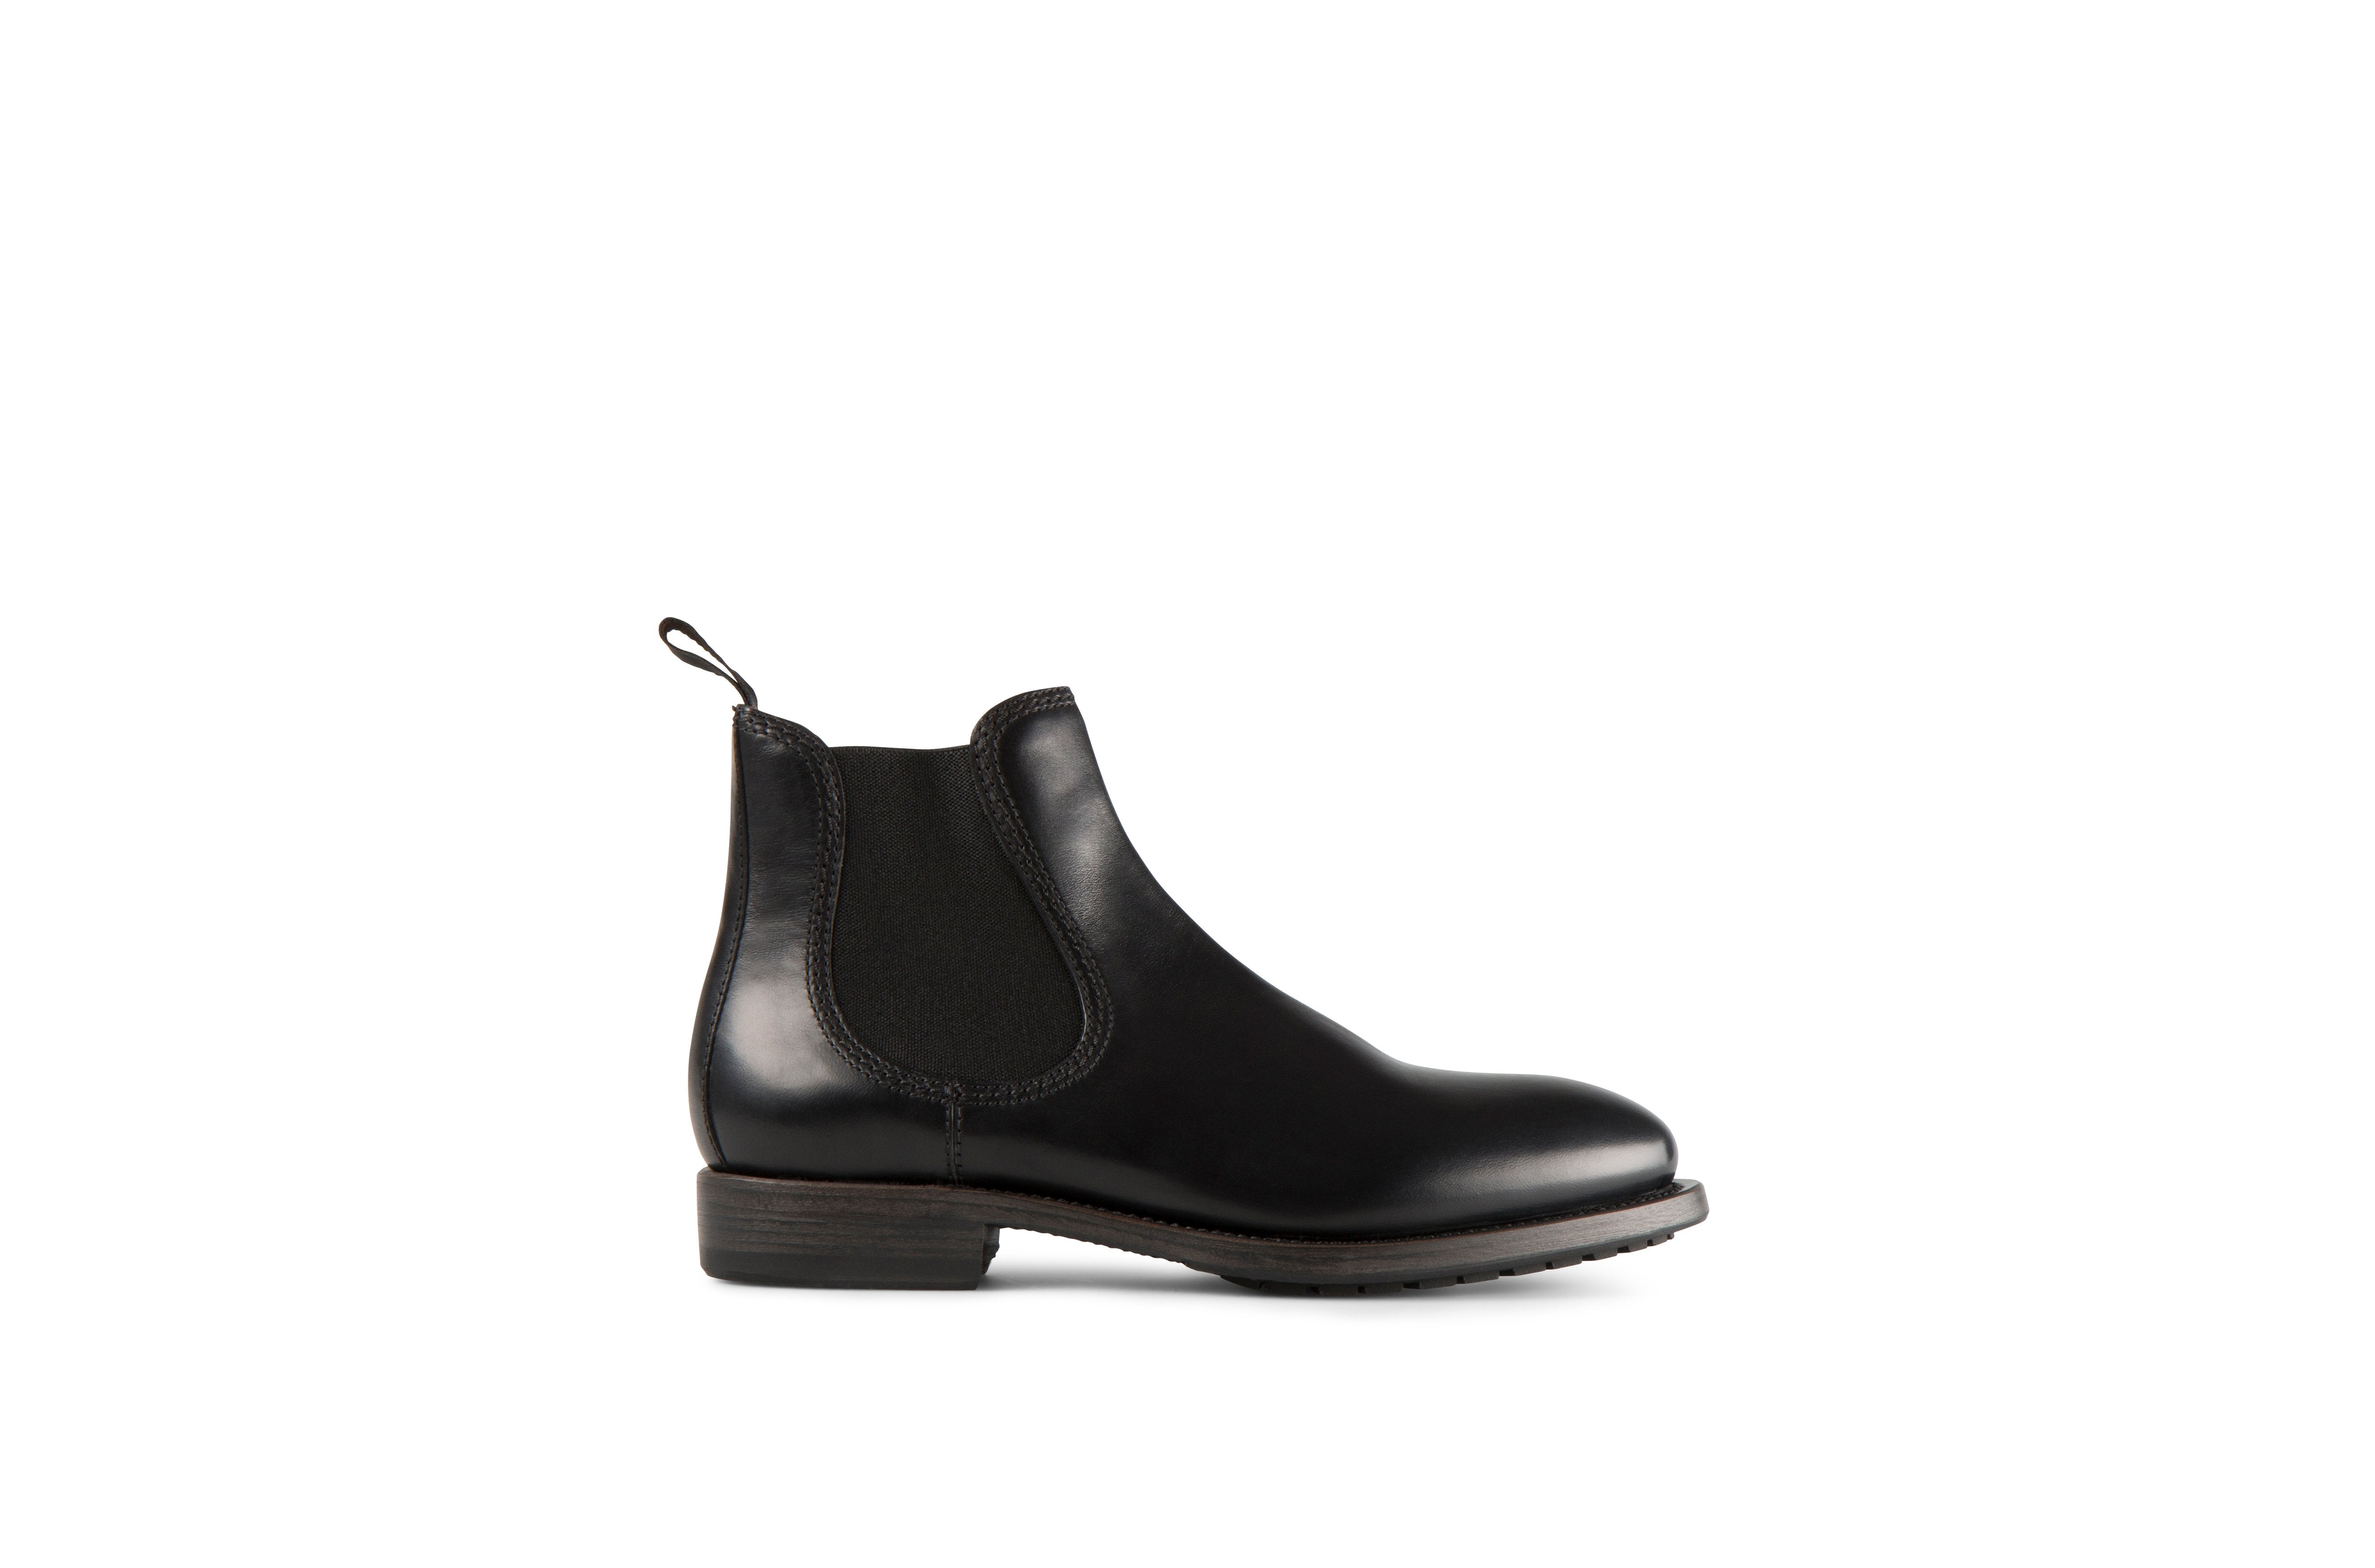 Hanoi Black Cordovan Leather Chelsea Boots